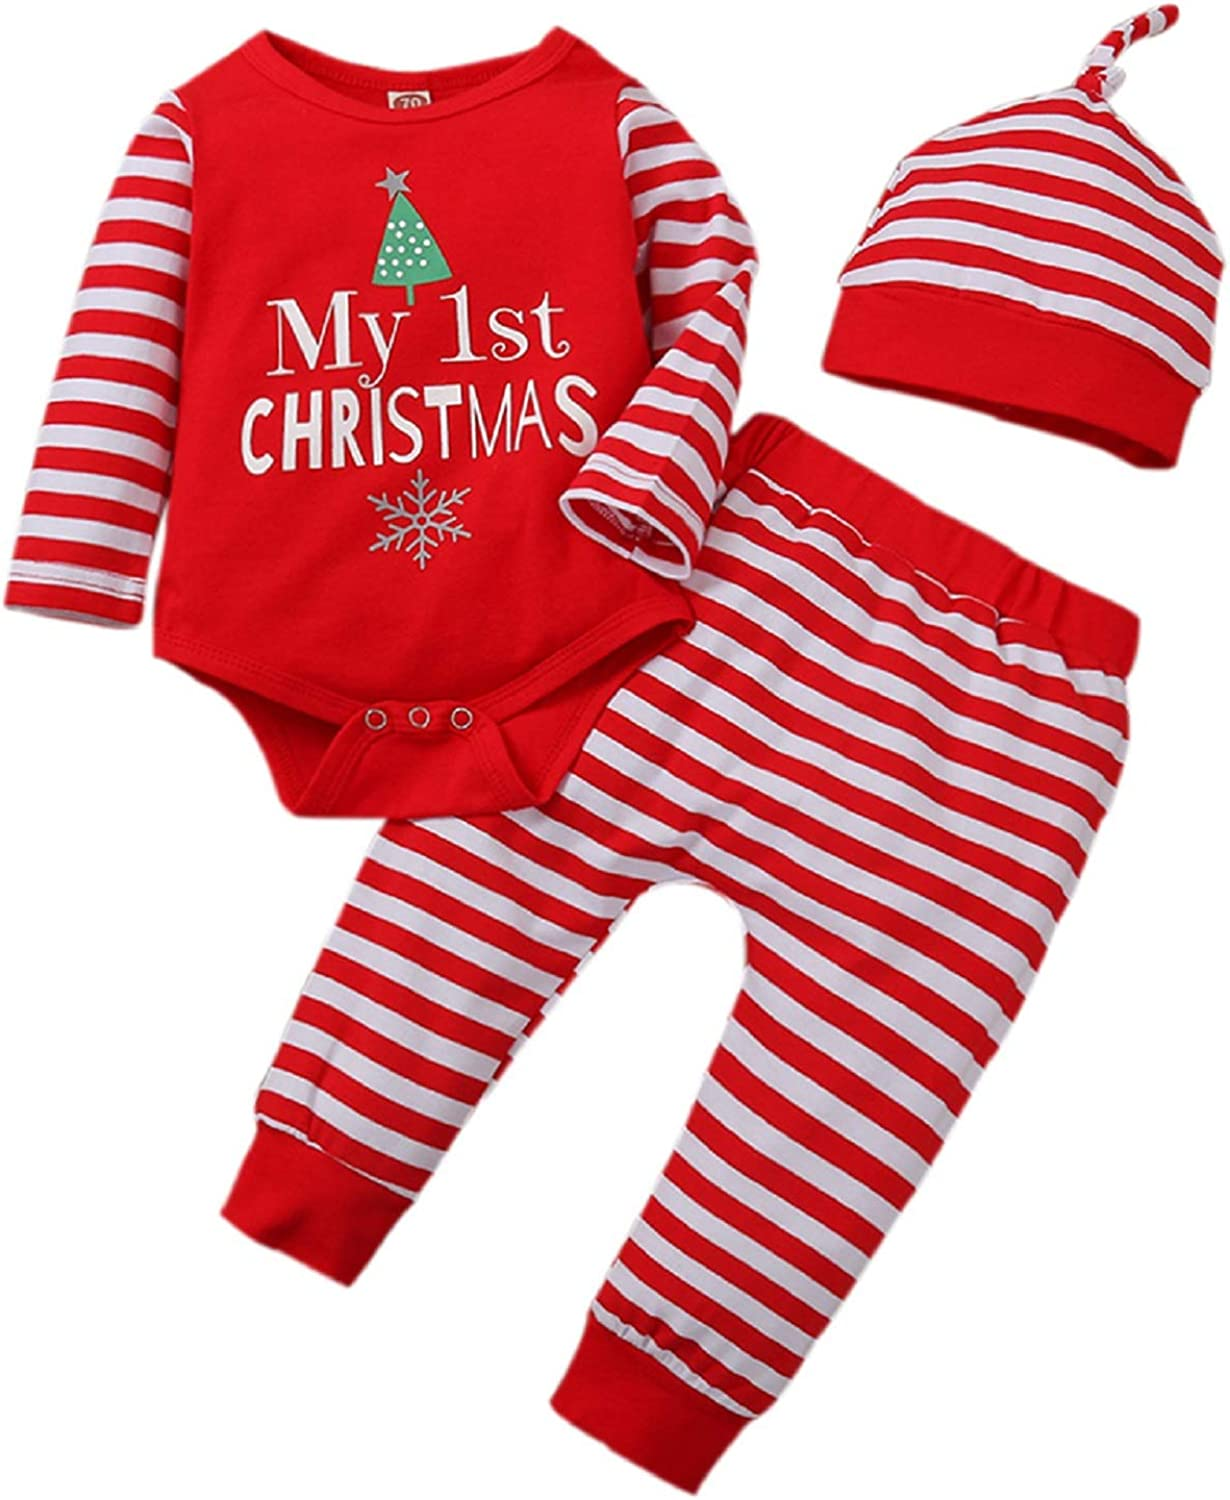 My First Christmas Outfits Newborn Baby Letters Christmas Tree Romper Red Stripe Pants Hat Christmas Clothes